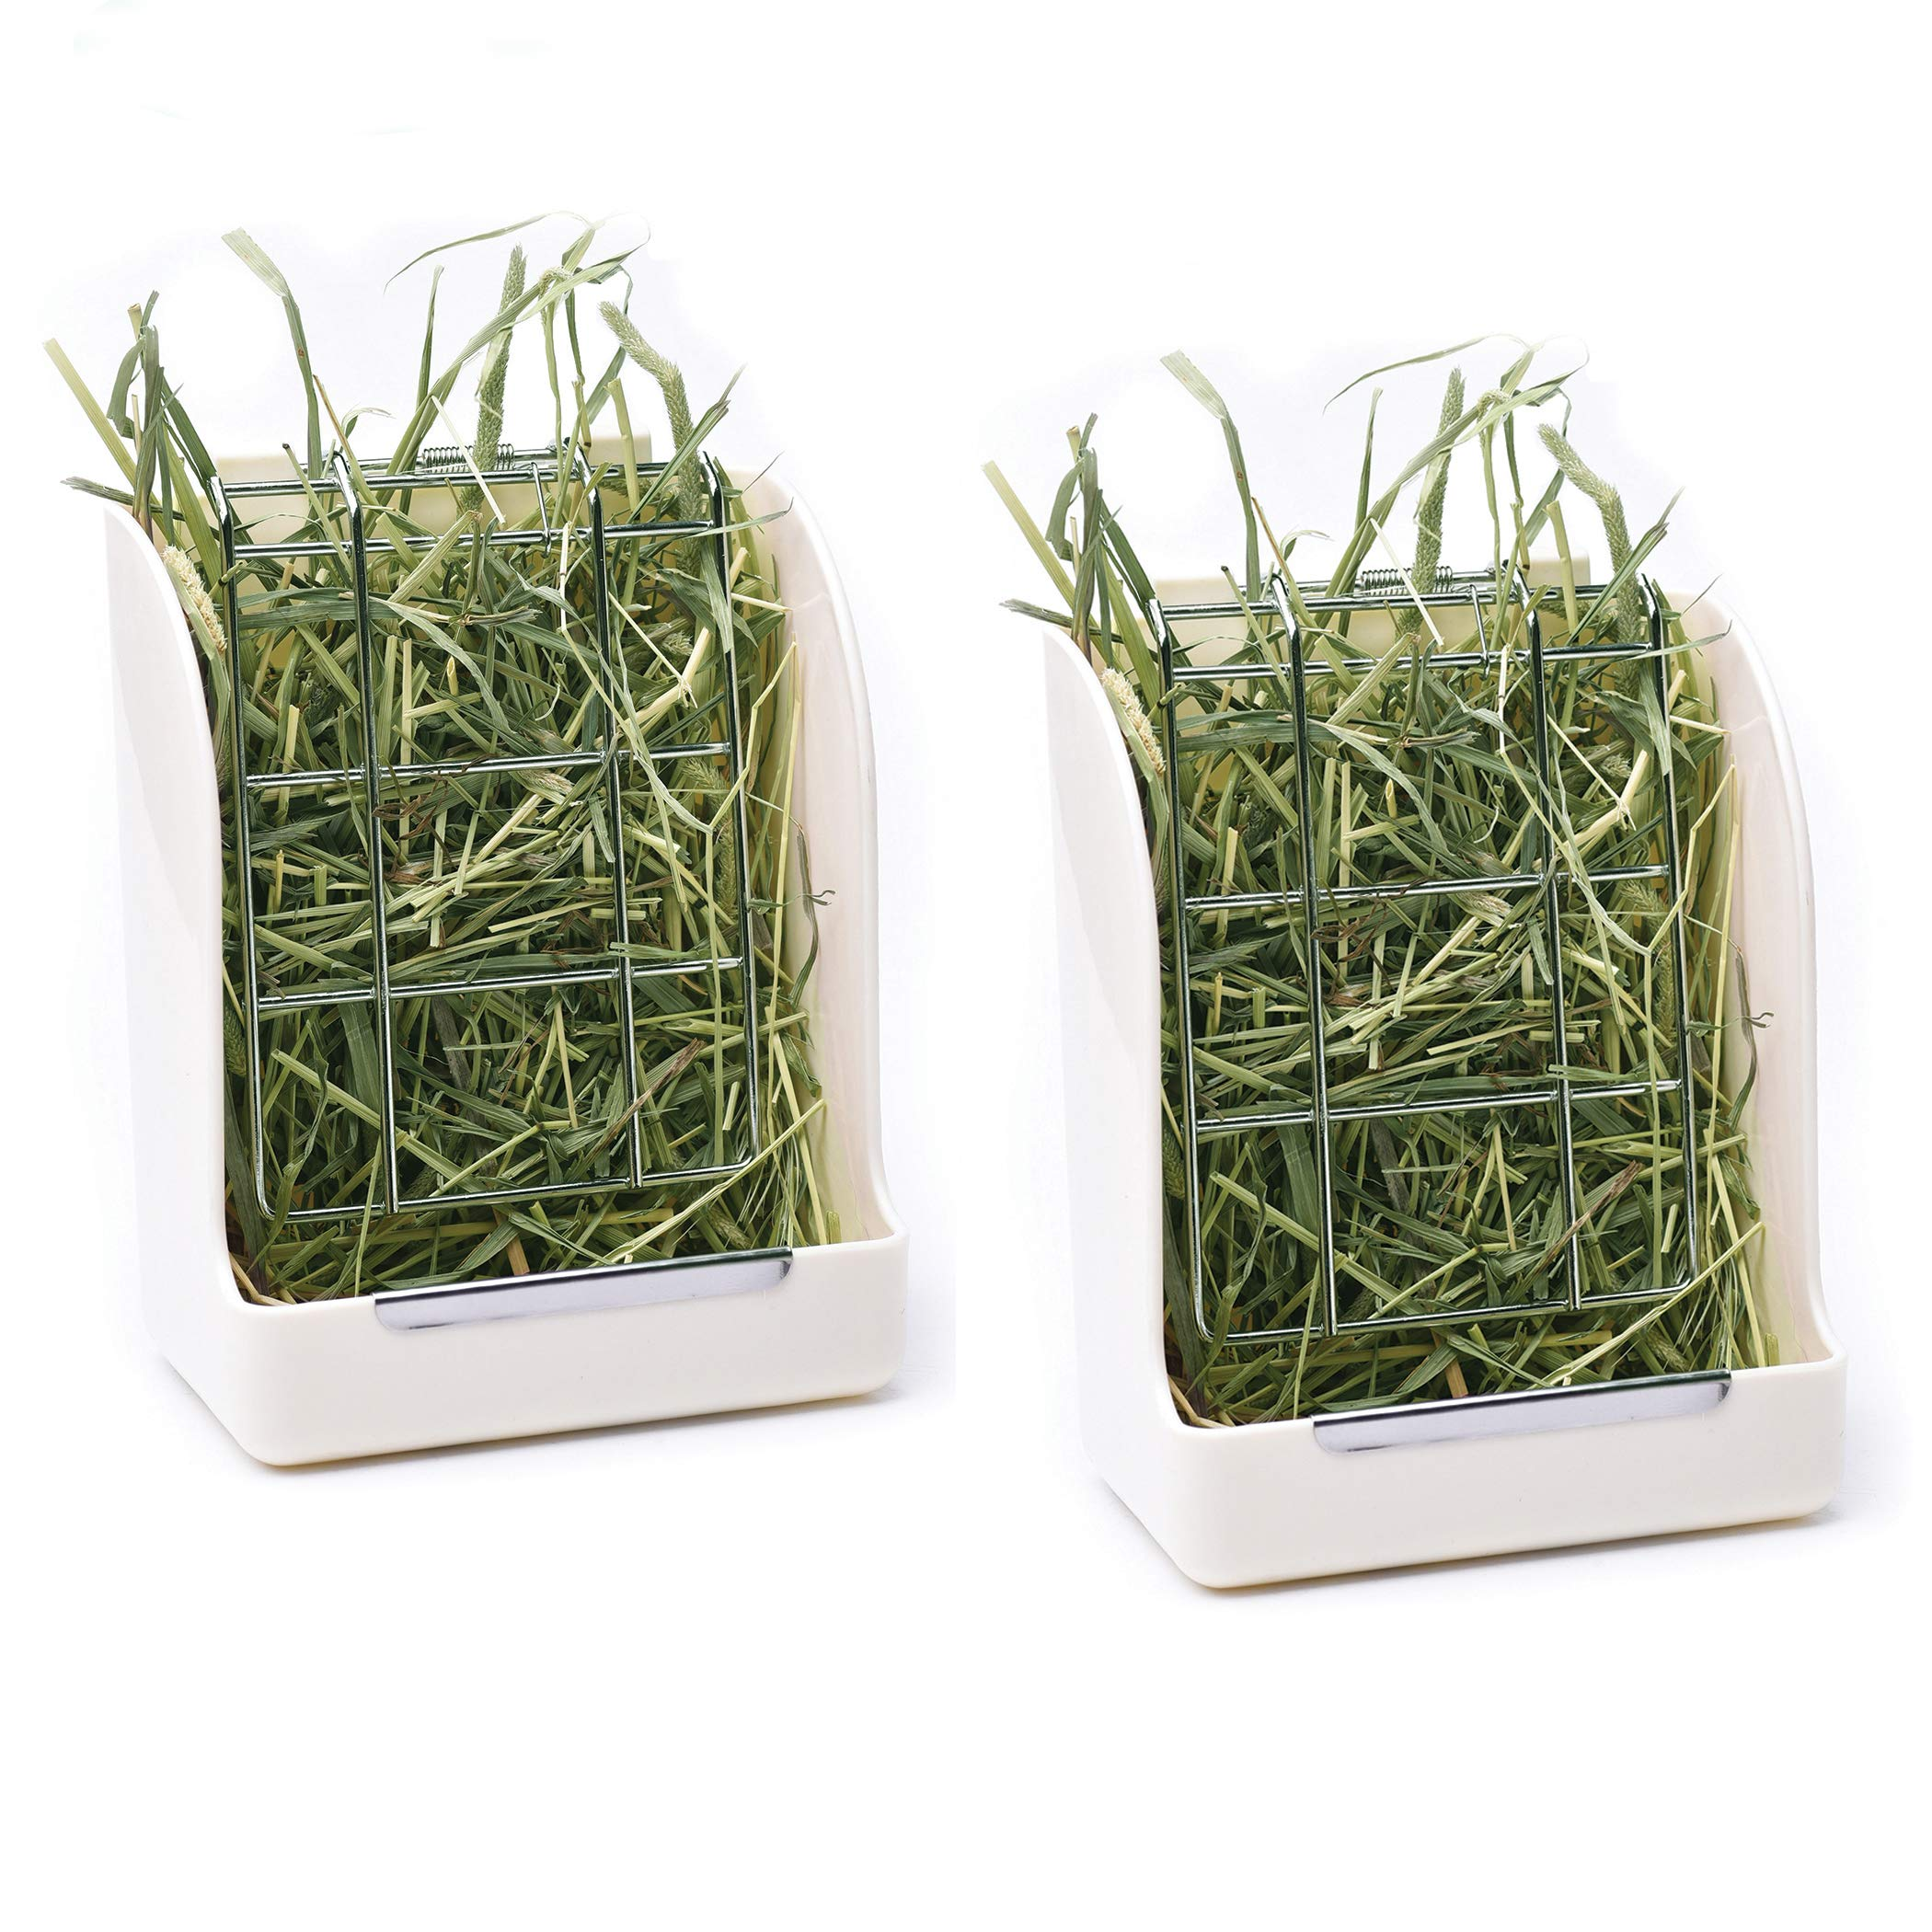 CalPalmy (Upgraded 2-Pack) Hay Feeder/Rack - Ideal for Rabbit/Chinchilla/Guinea Pig - Keeps Grass Clean & Fresh/Non-Toxic, BPA Free Plastic/Minimizing Waste/Mess by CalPalmy